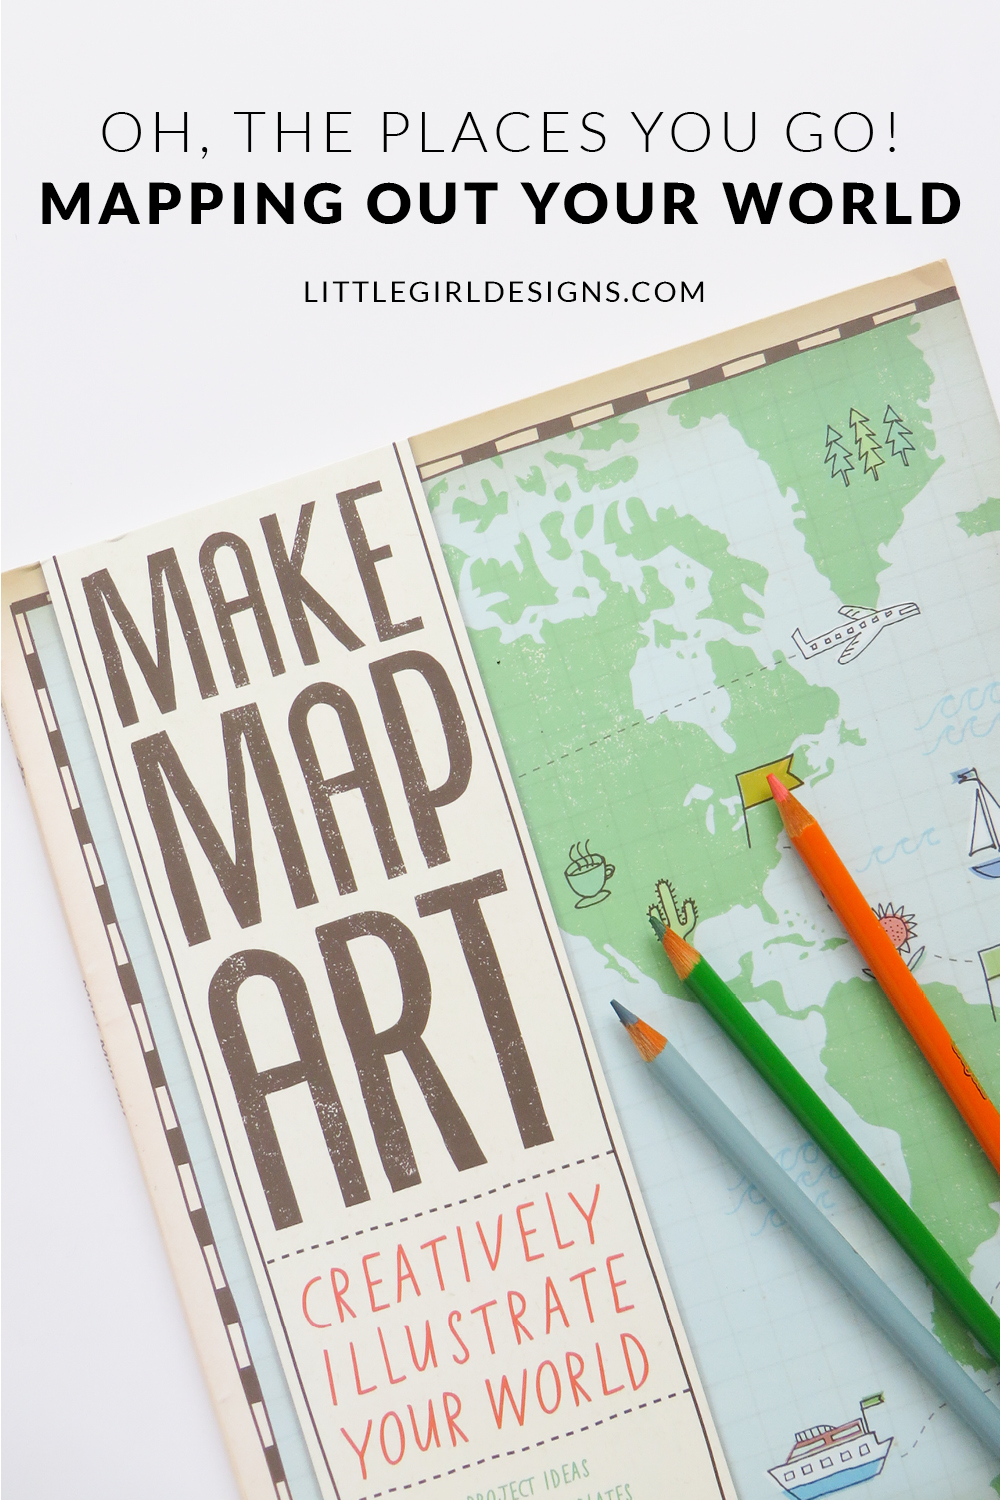 Mapping Out Your World - Have you ever made a map of your world? The places you walk with your friends? The memories you made in college? The dreams you have for your future? This is such a fun practice AND it makes a great birthday gift too! via littlegirldesigns.com